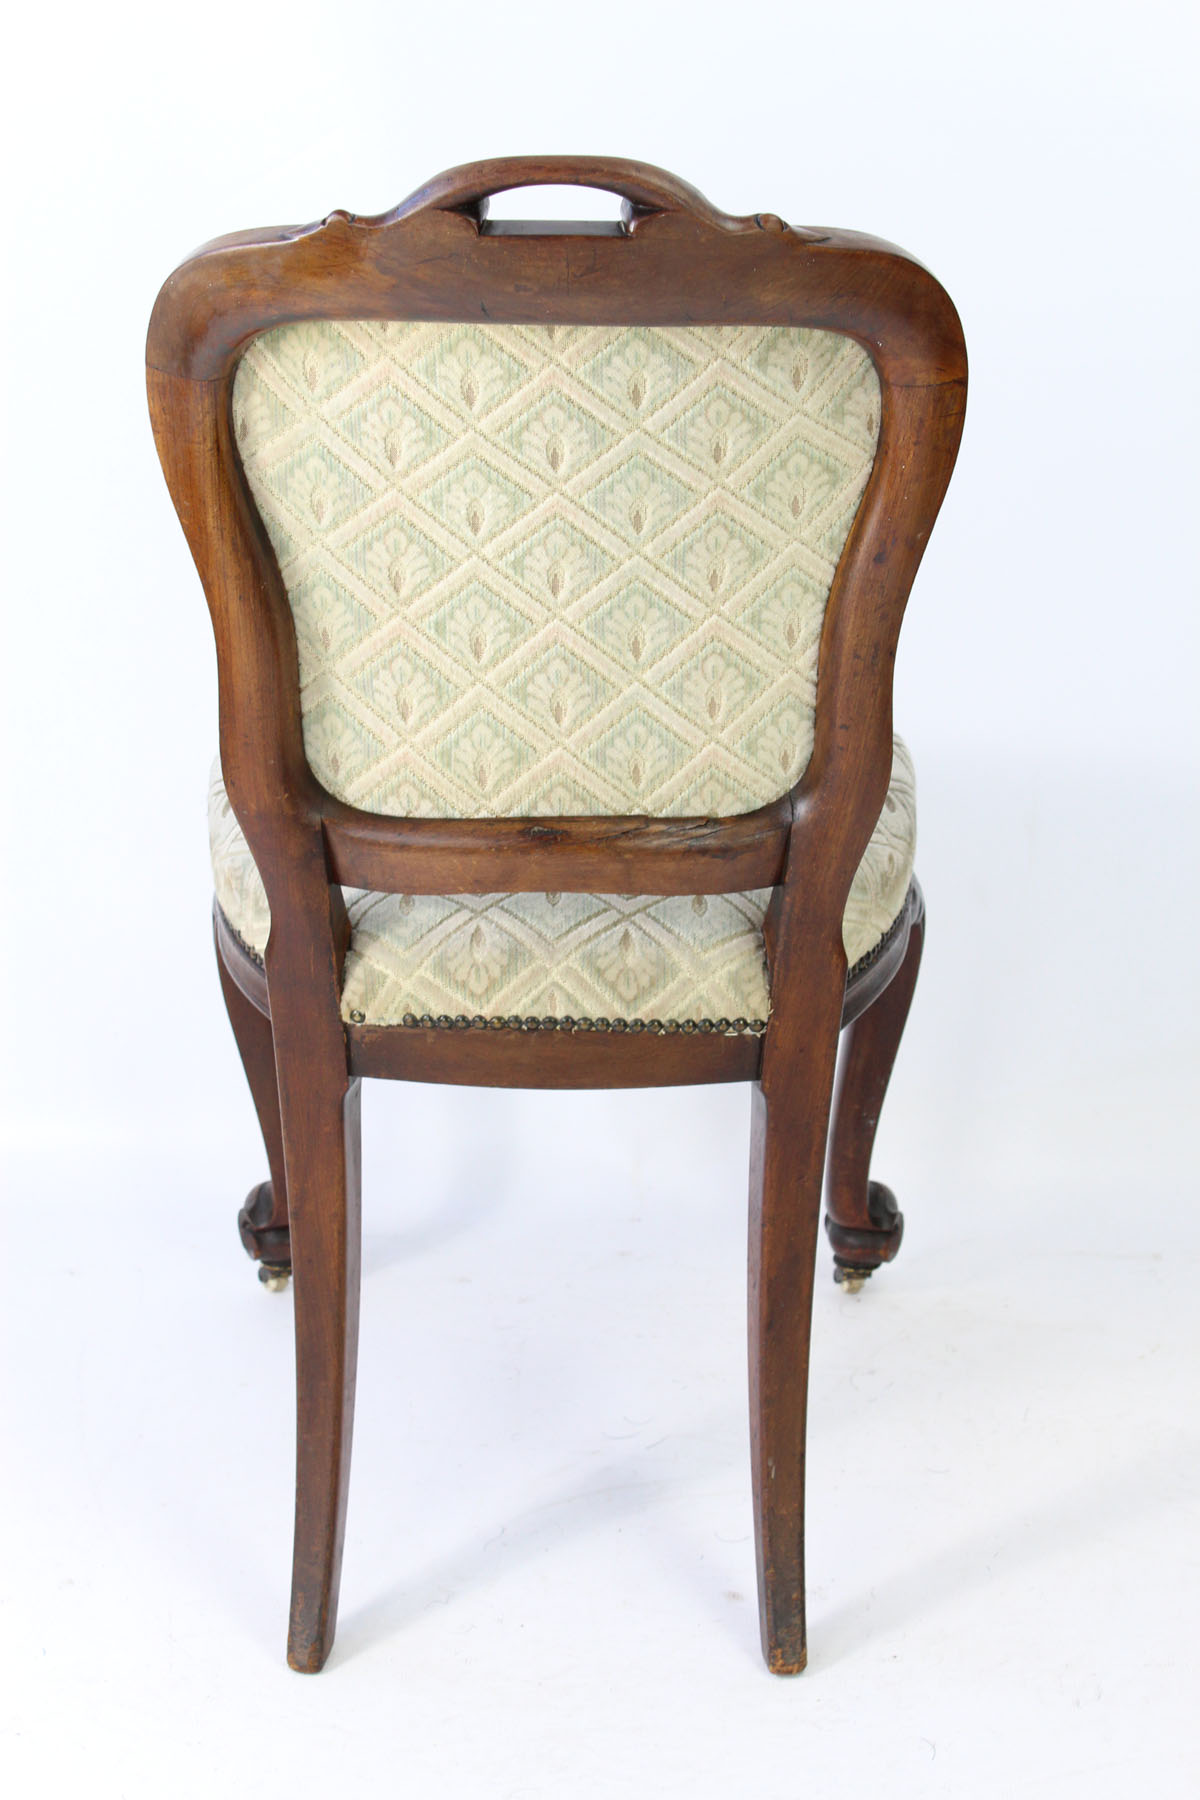 Set 4 Victorian Balloon Back Chairs For Reupholstery